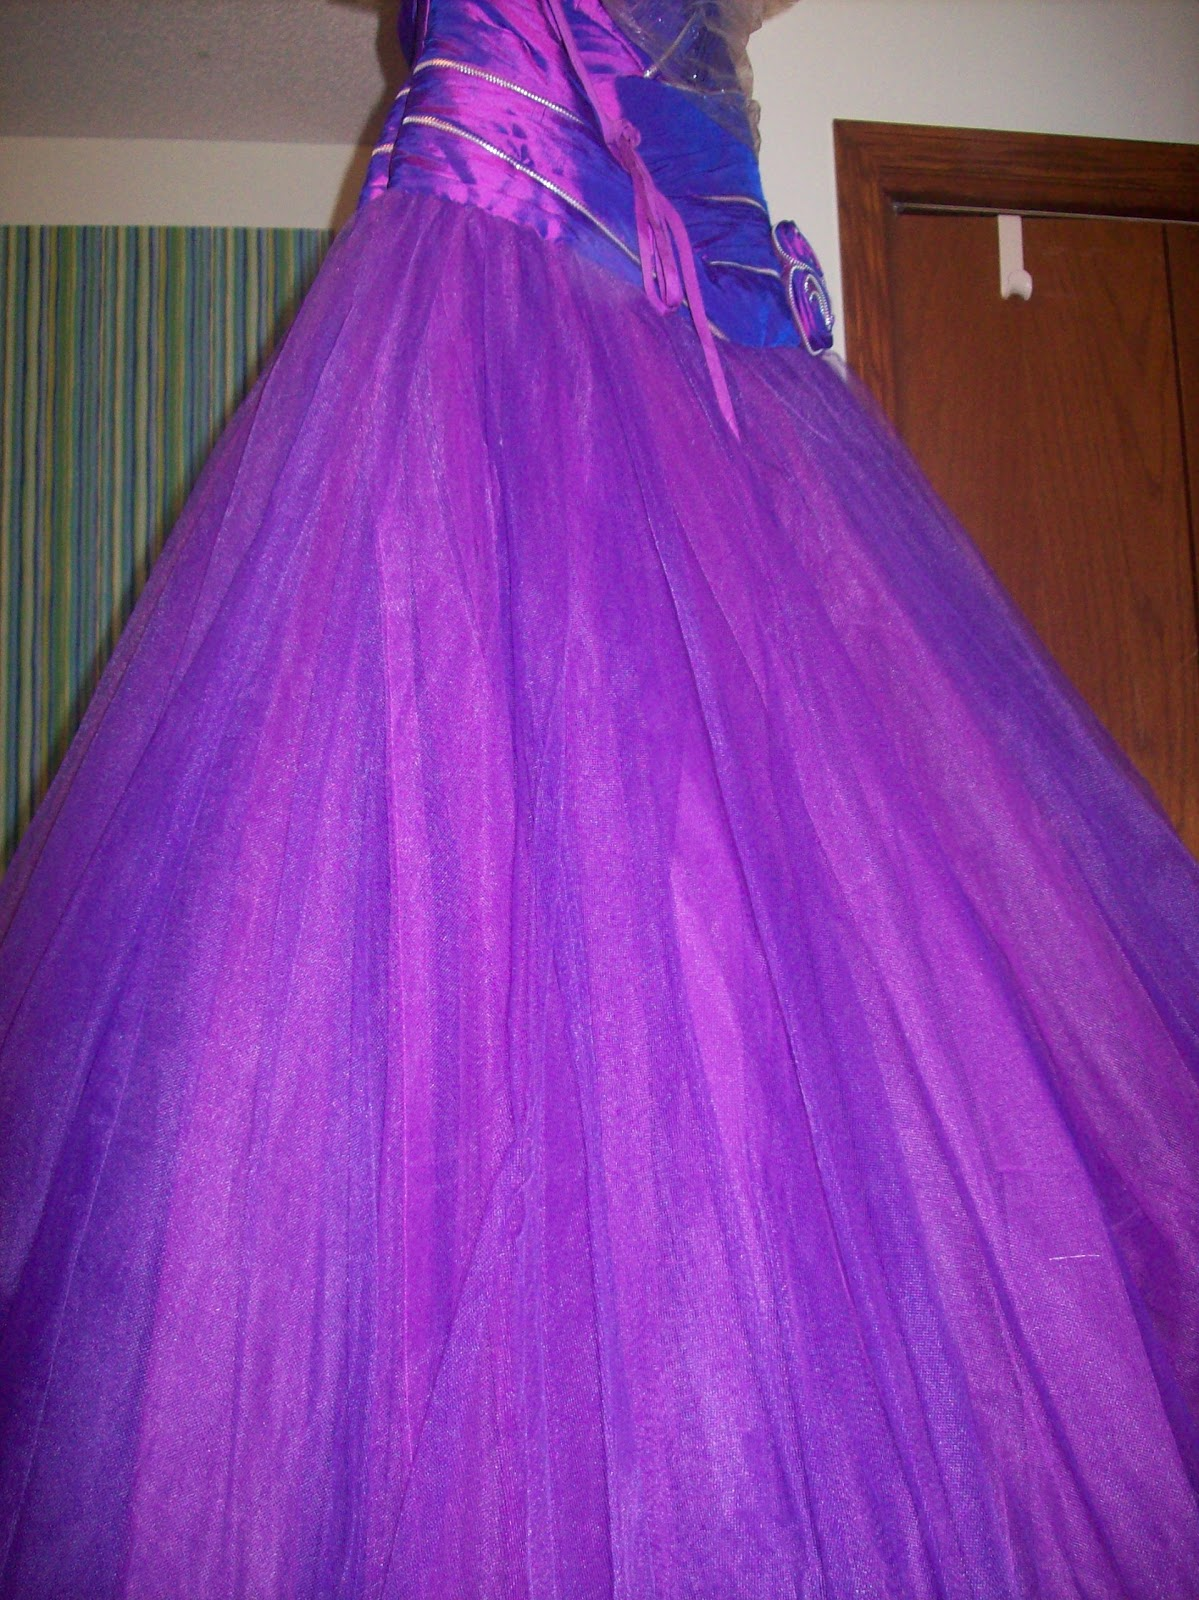 Sew Kansas: Hemming Ball Gown With a Tulle Skirt